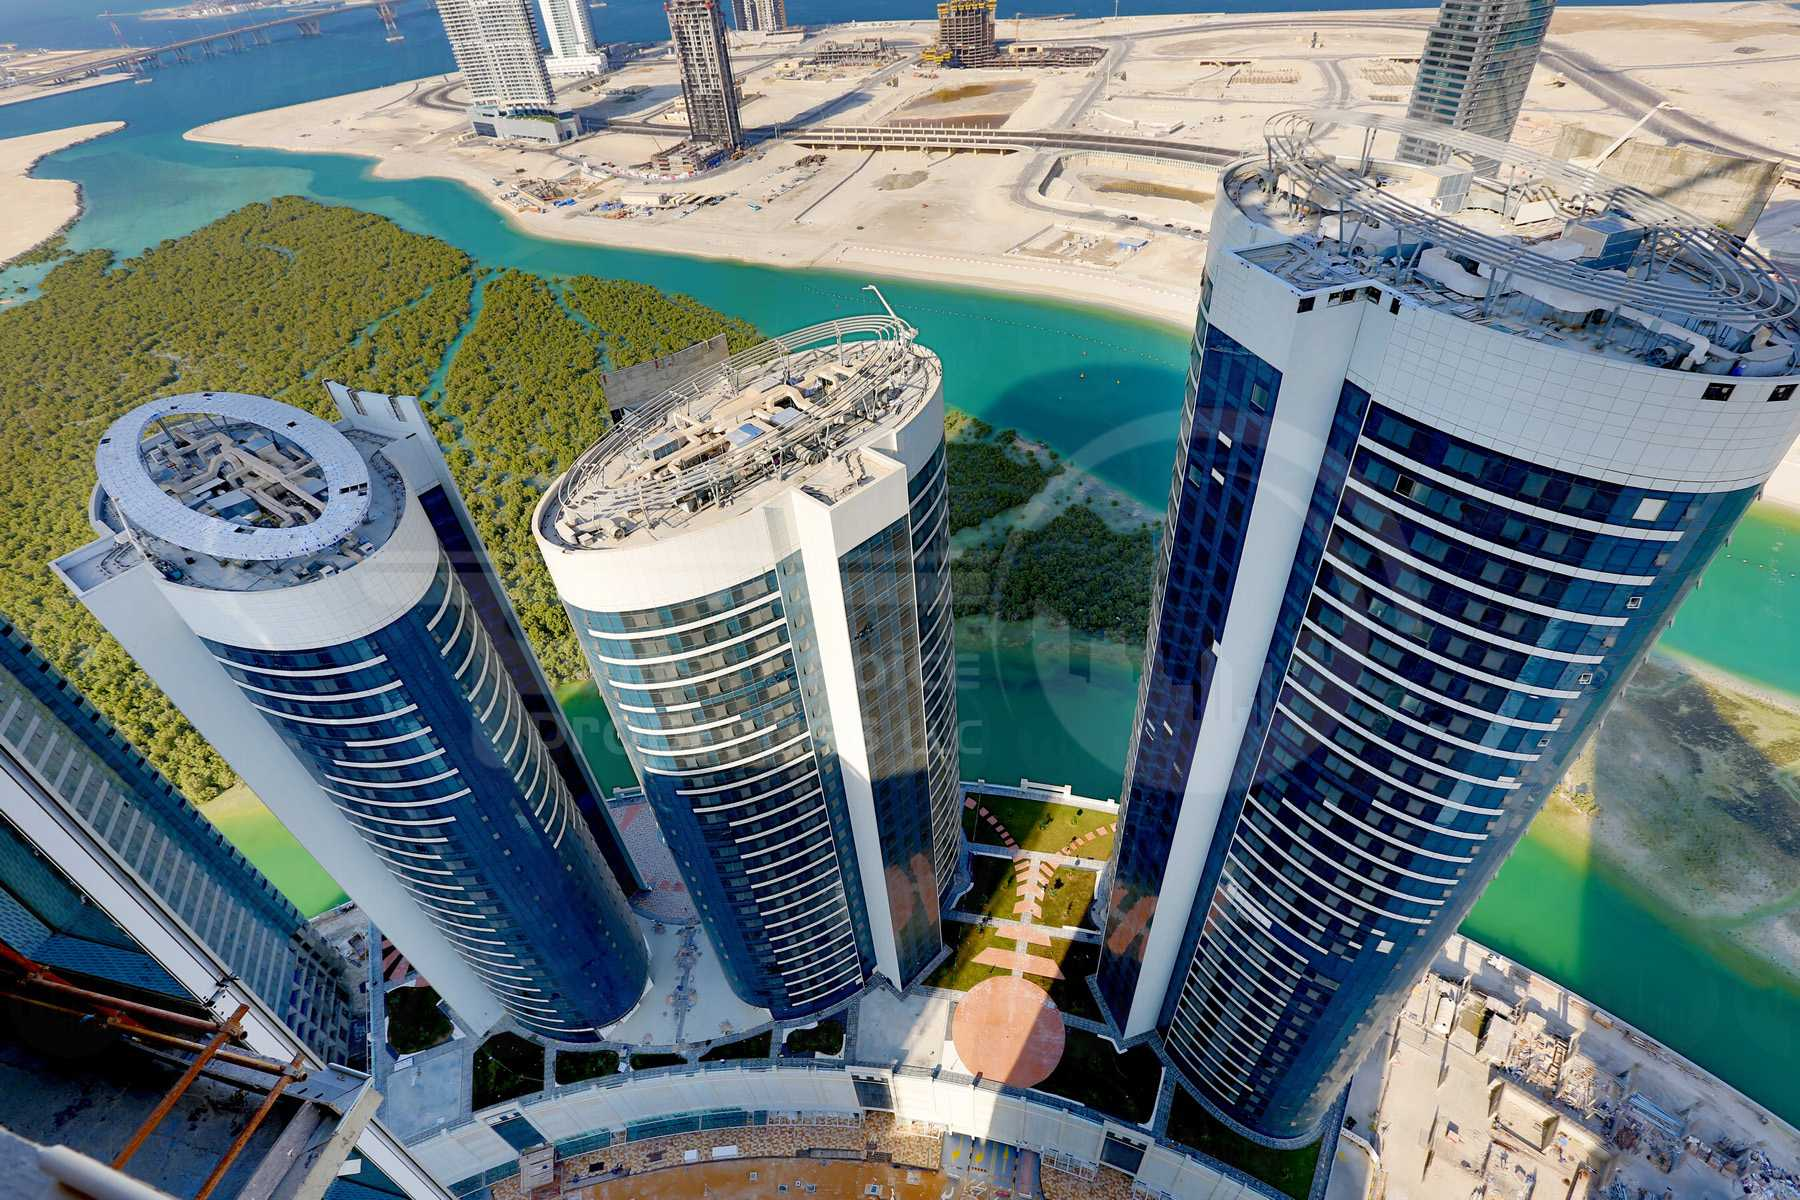 Studio - 1BR - 2BR - 3BR - 4BR Apartment - Abu Dhabi - UAE - Al Reem Island - Hydra Avenue - Outside View (51) - Copy.jpg